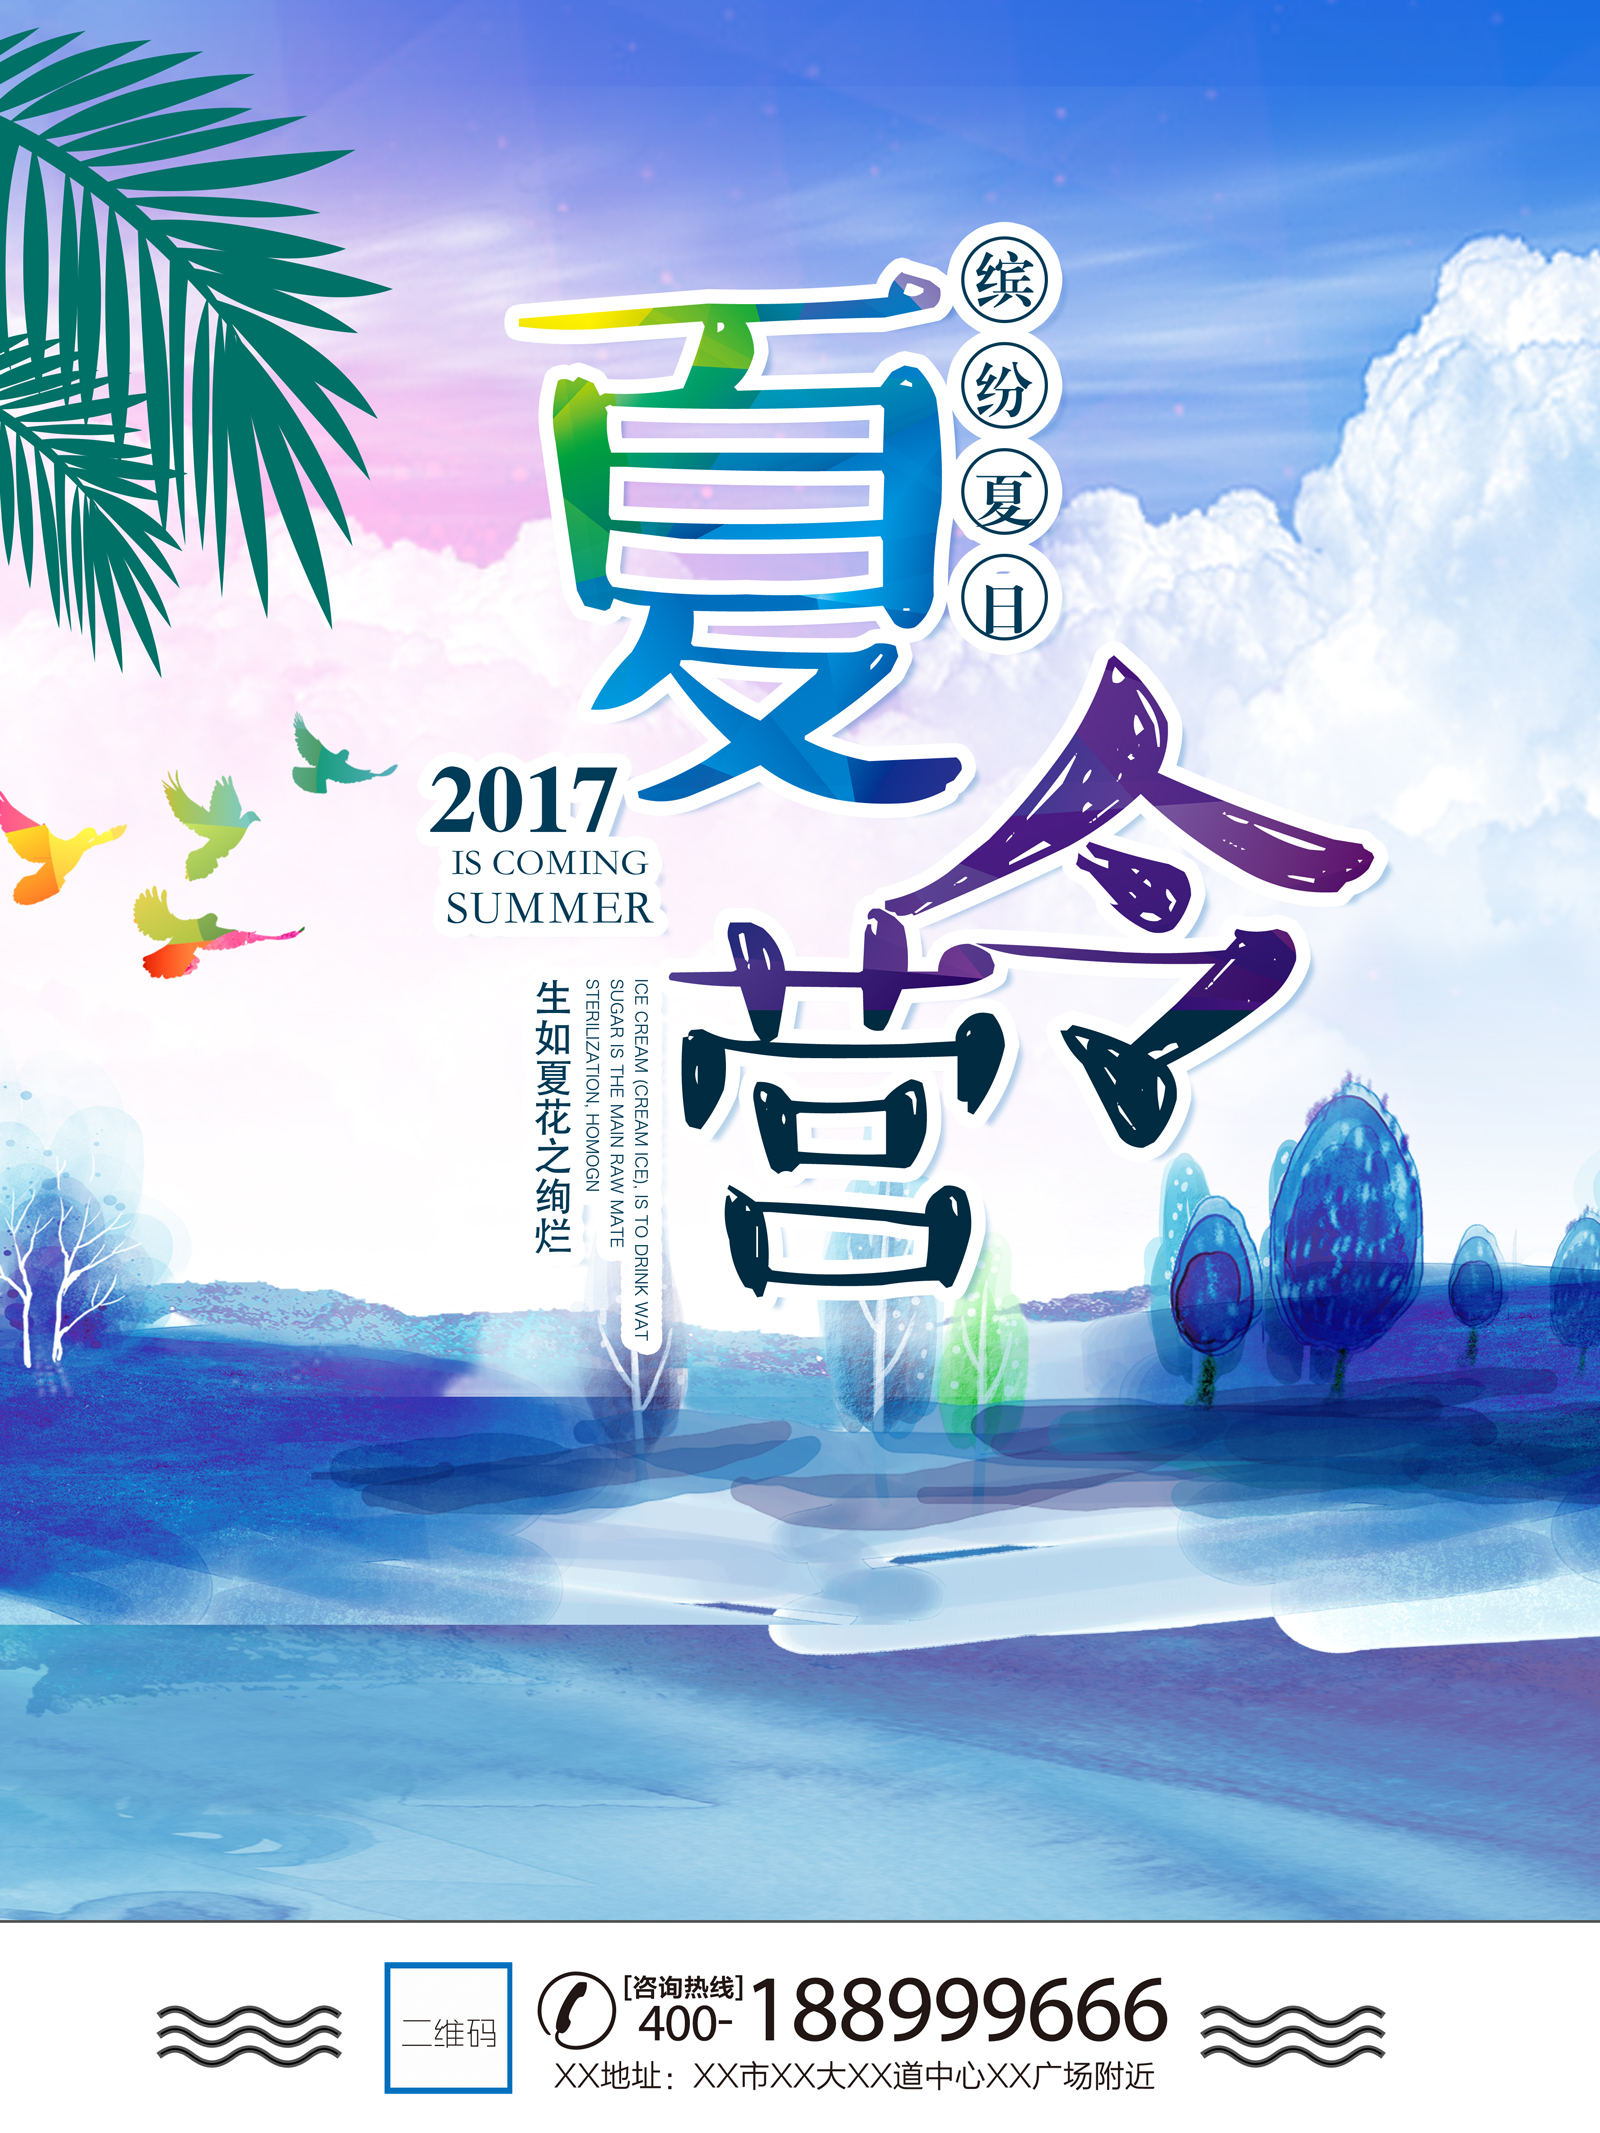 chinesefontdesign.com 2017 05 27 11 31 53 570575 Summer camp posters China PSD File Free Download white sky white clouds trees summer camp offer summer camp flyers summer camp advertising Summer Starfish shells sea hand painted watercolor fresh wind fresh conch blue sky beach